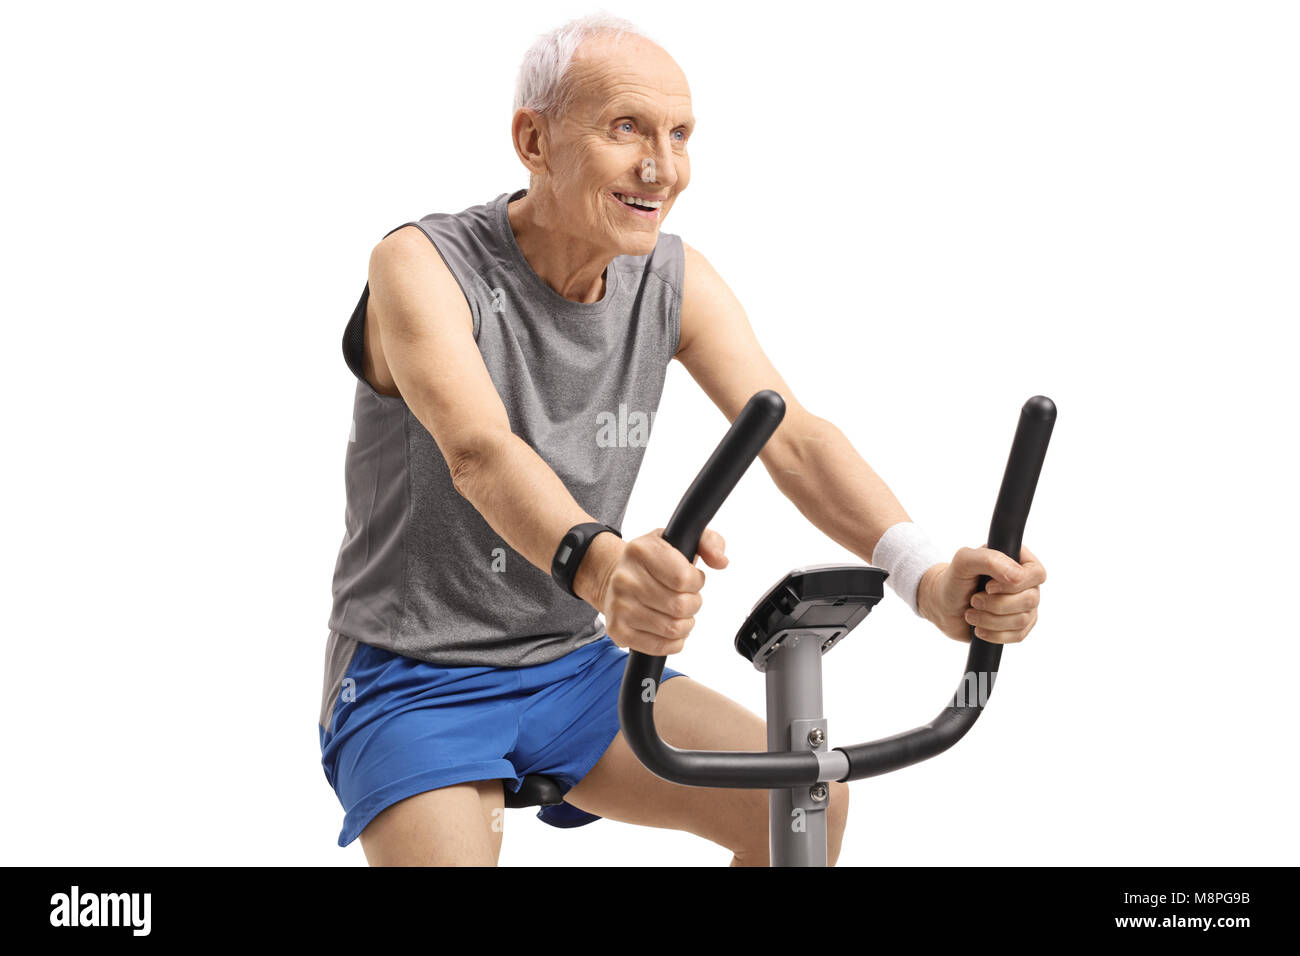 Senior working out on an exercise bike isolated on white background - Stock Image